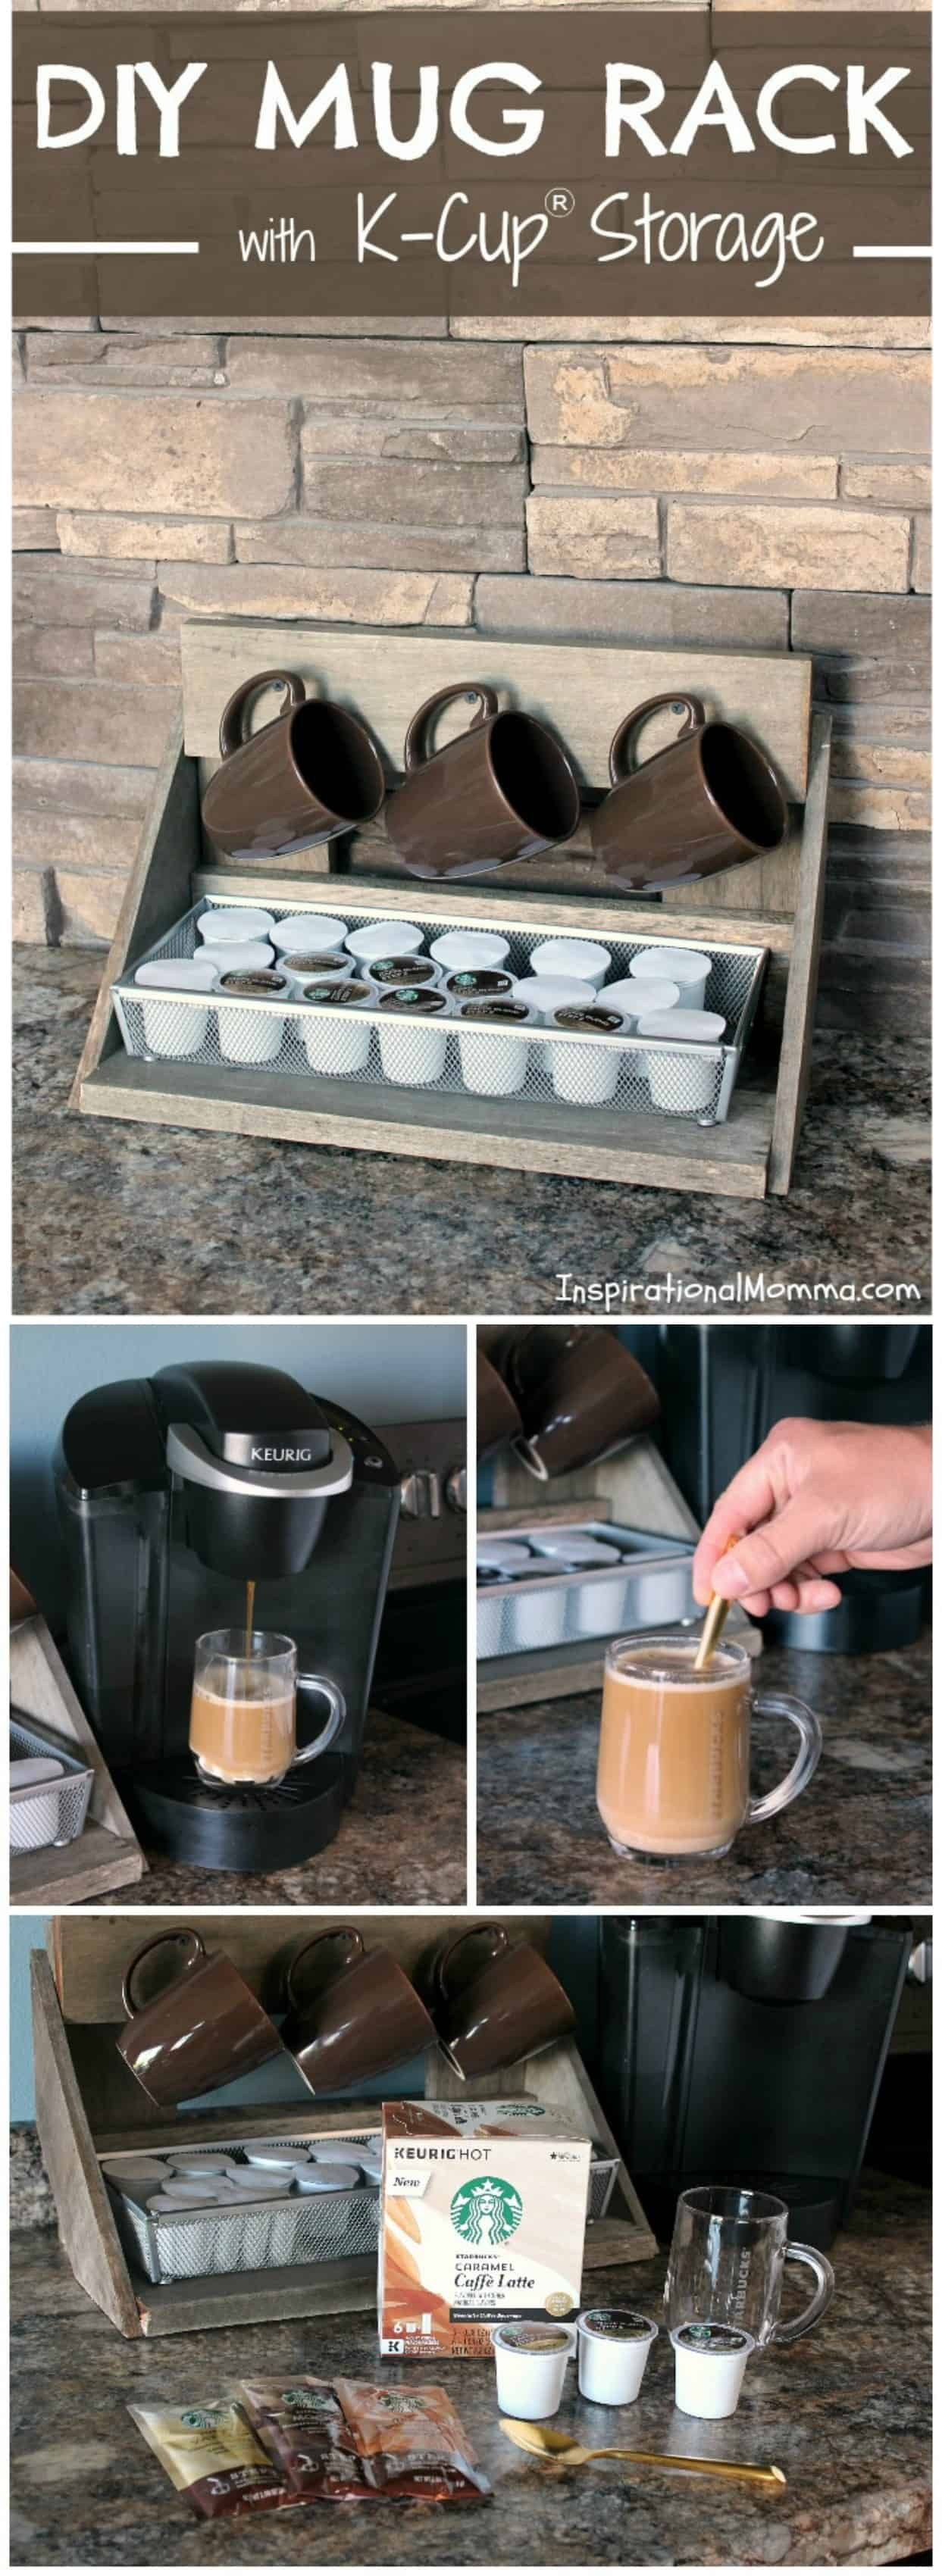 DIY Mug Rack with K-Cup Storage